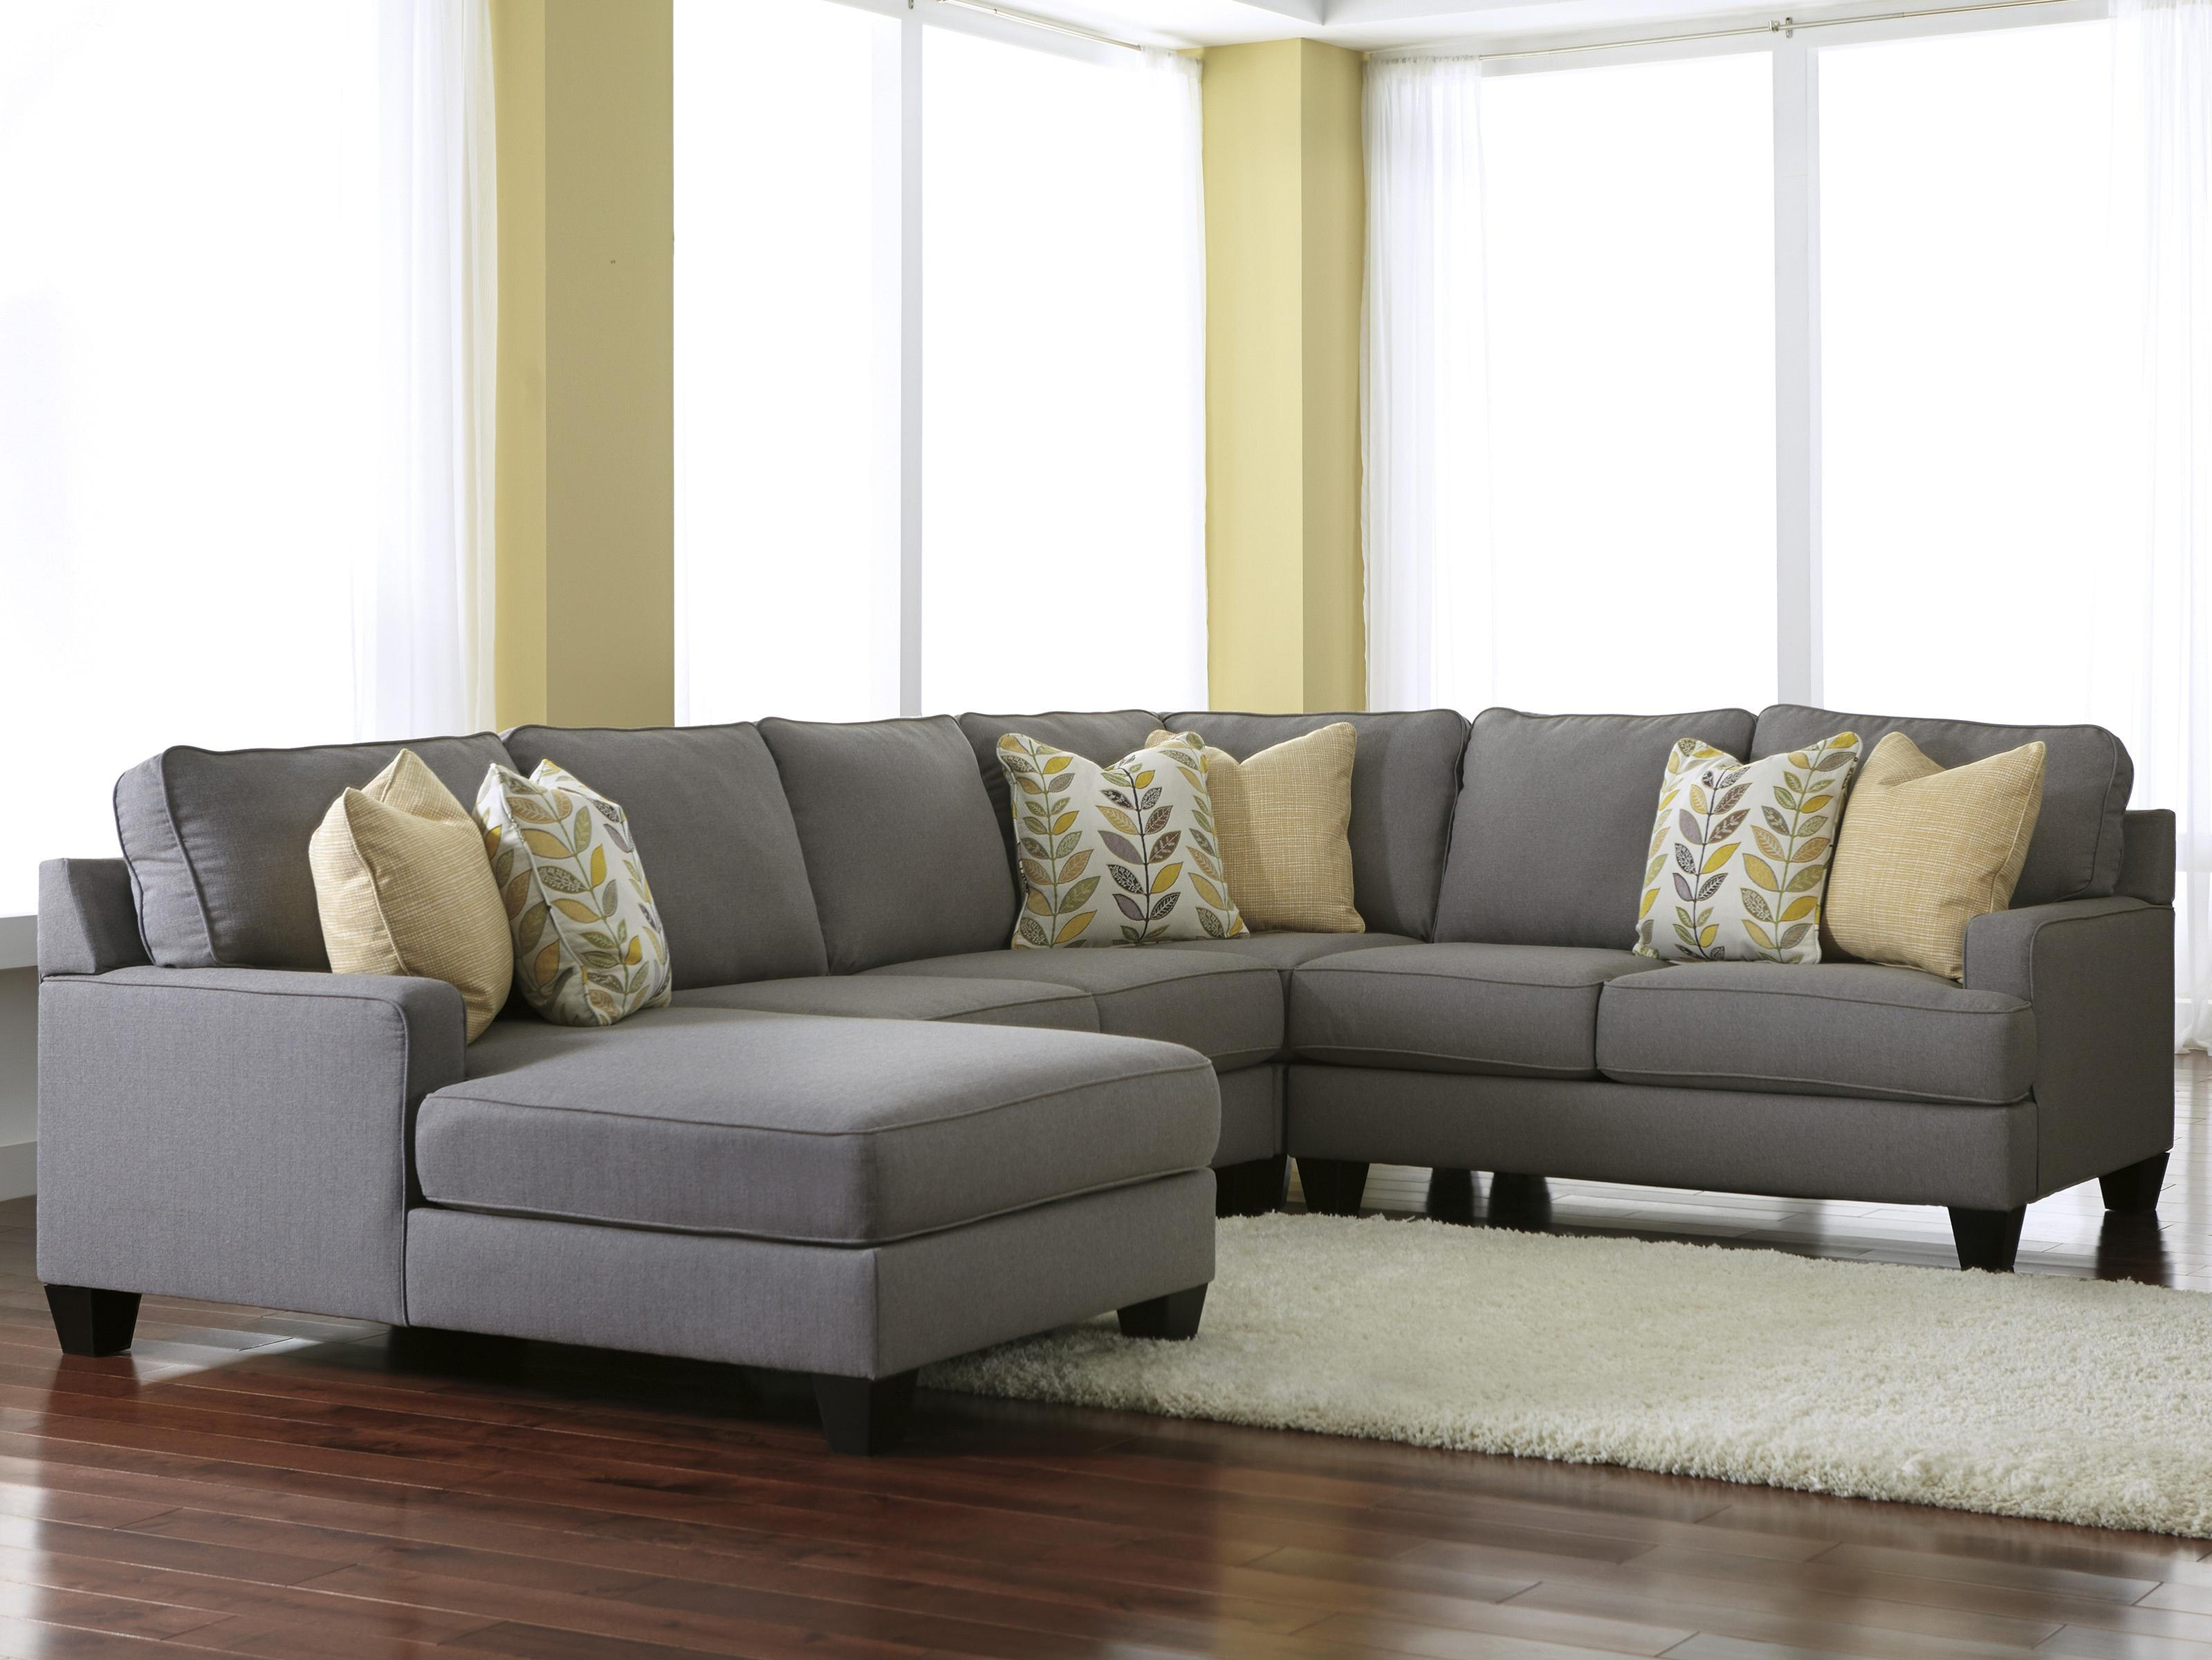 Chamberly Alloy 4 Piece Sectional Sofa With Left Chaise